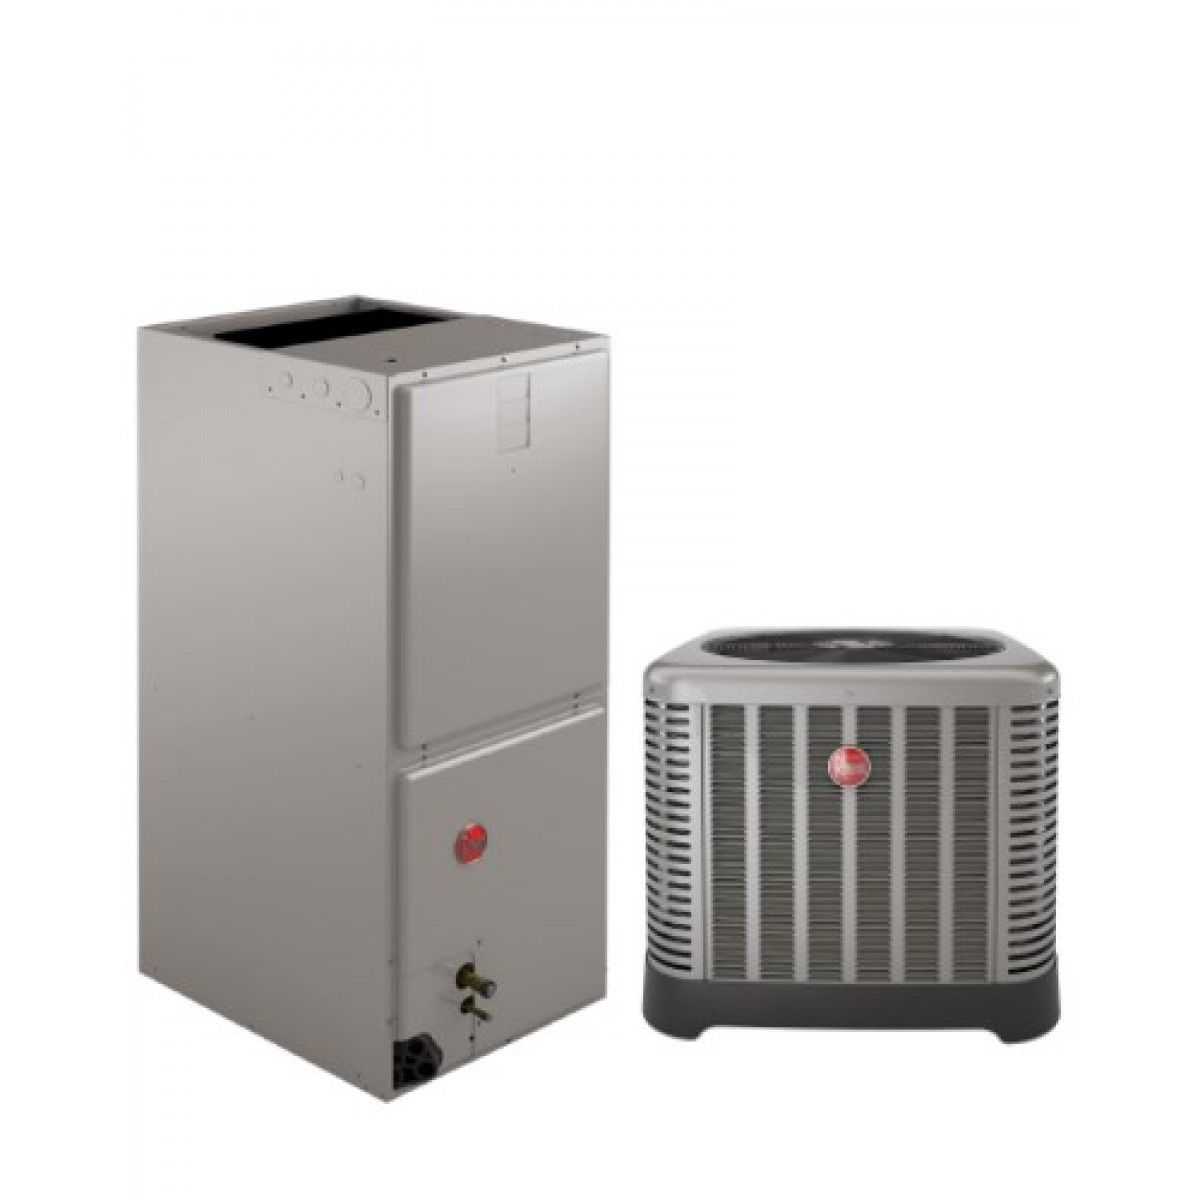 Home / Systems / Rheem 4.0 Ton 14 SEER Air Conditioning System #9D2E33